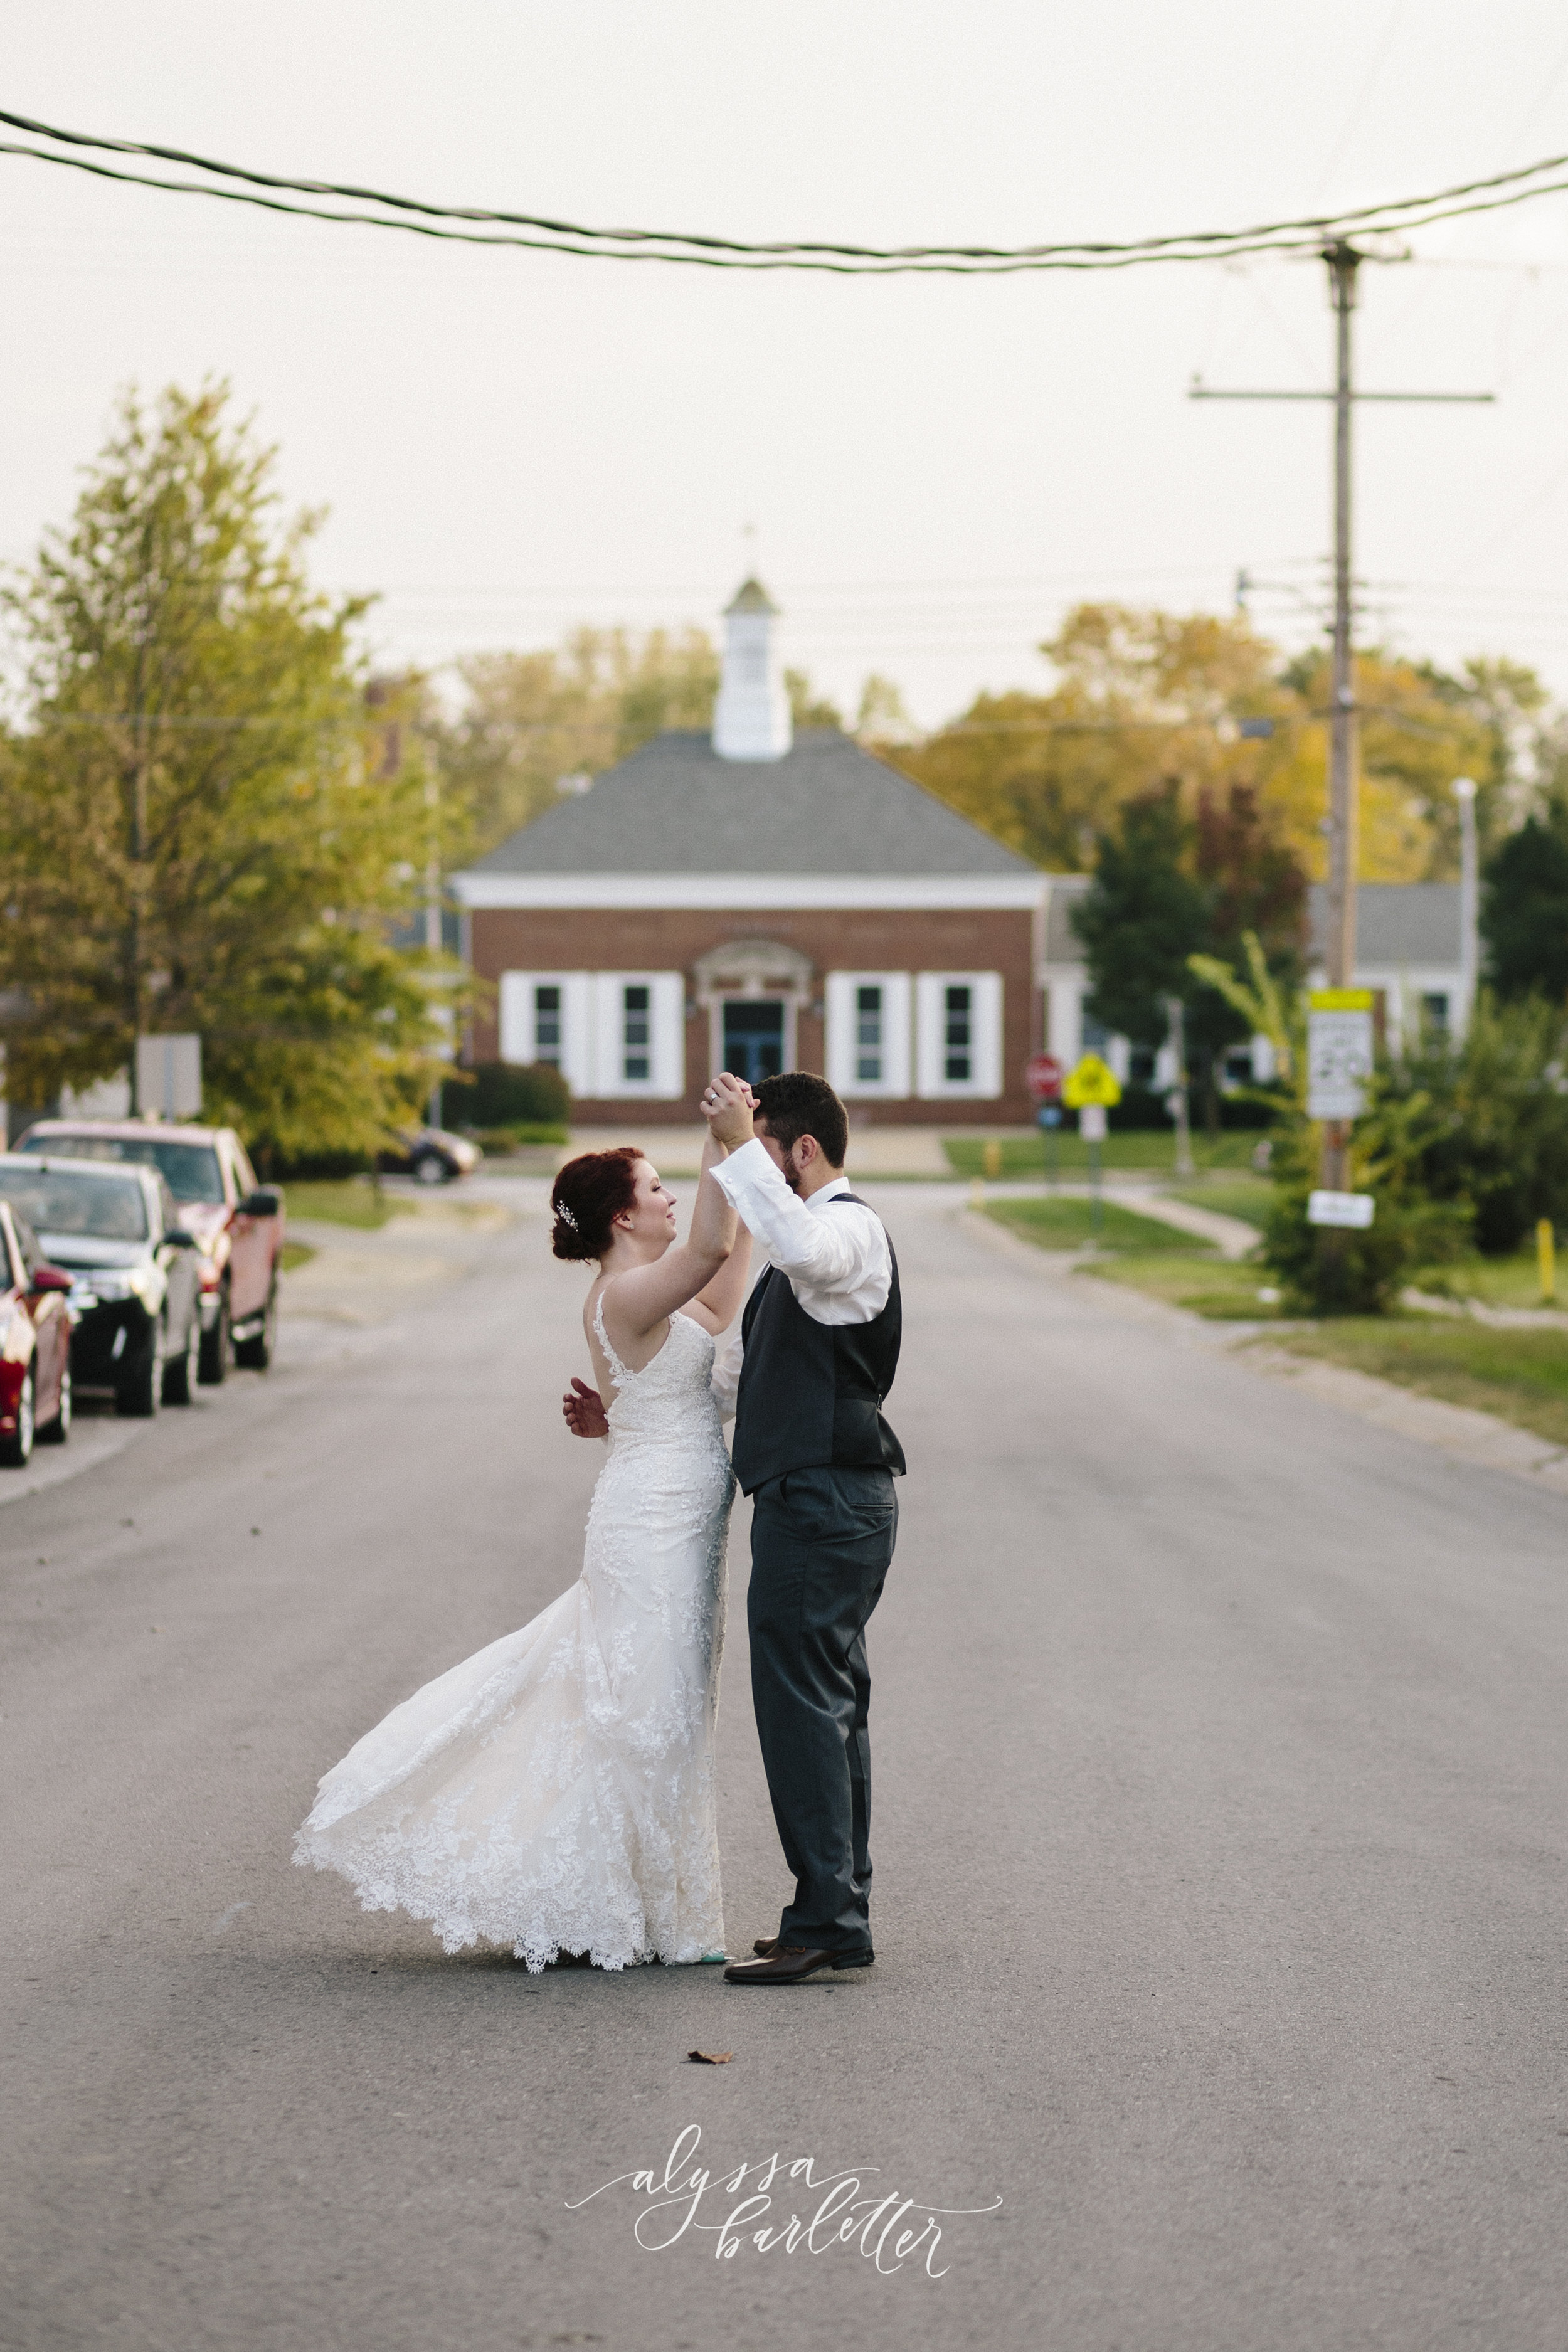 alyssa barletter photography wedding liberty missouri hipster quirky alex and shawn-1-42.jpg